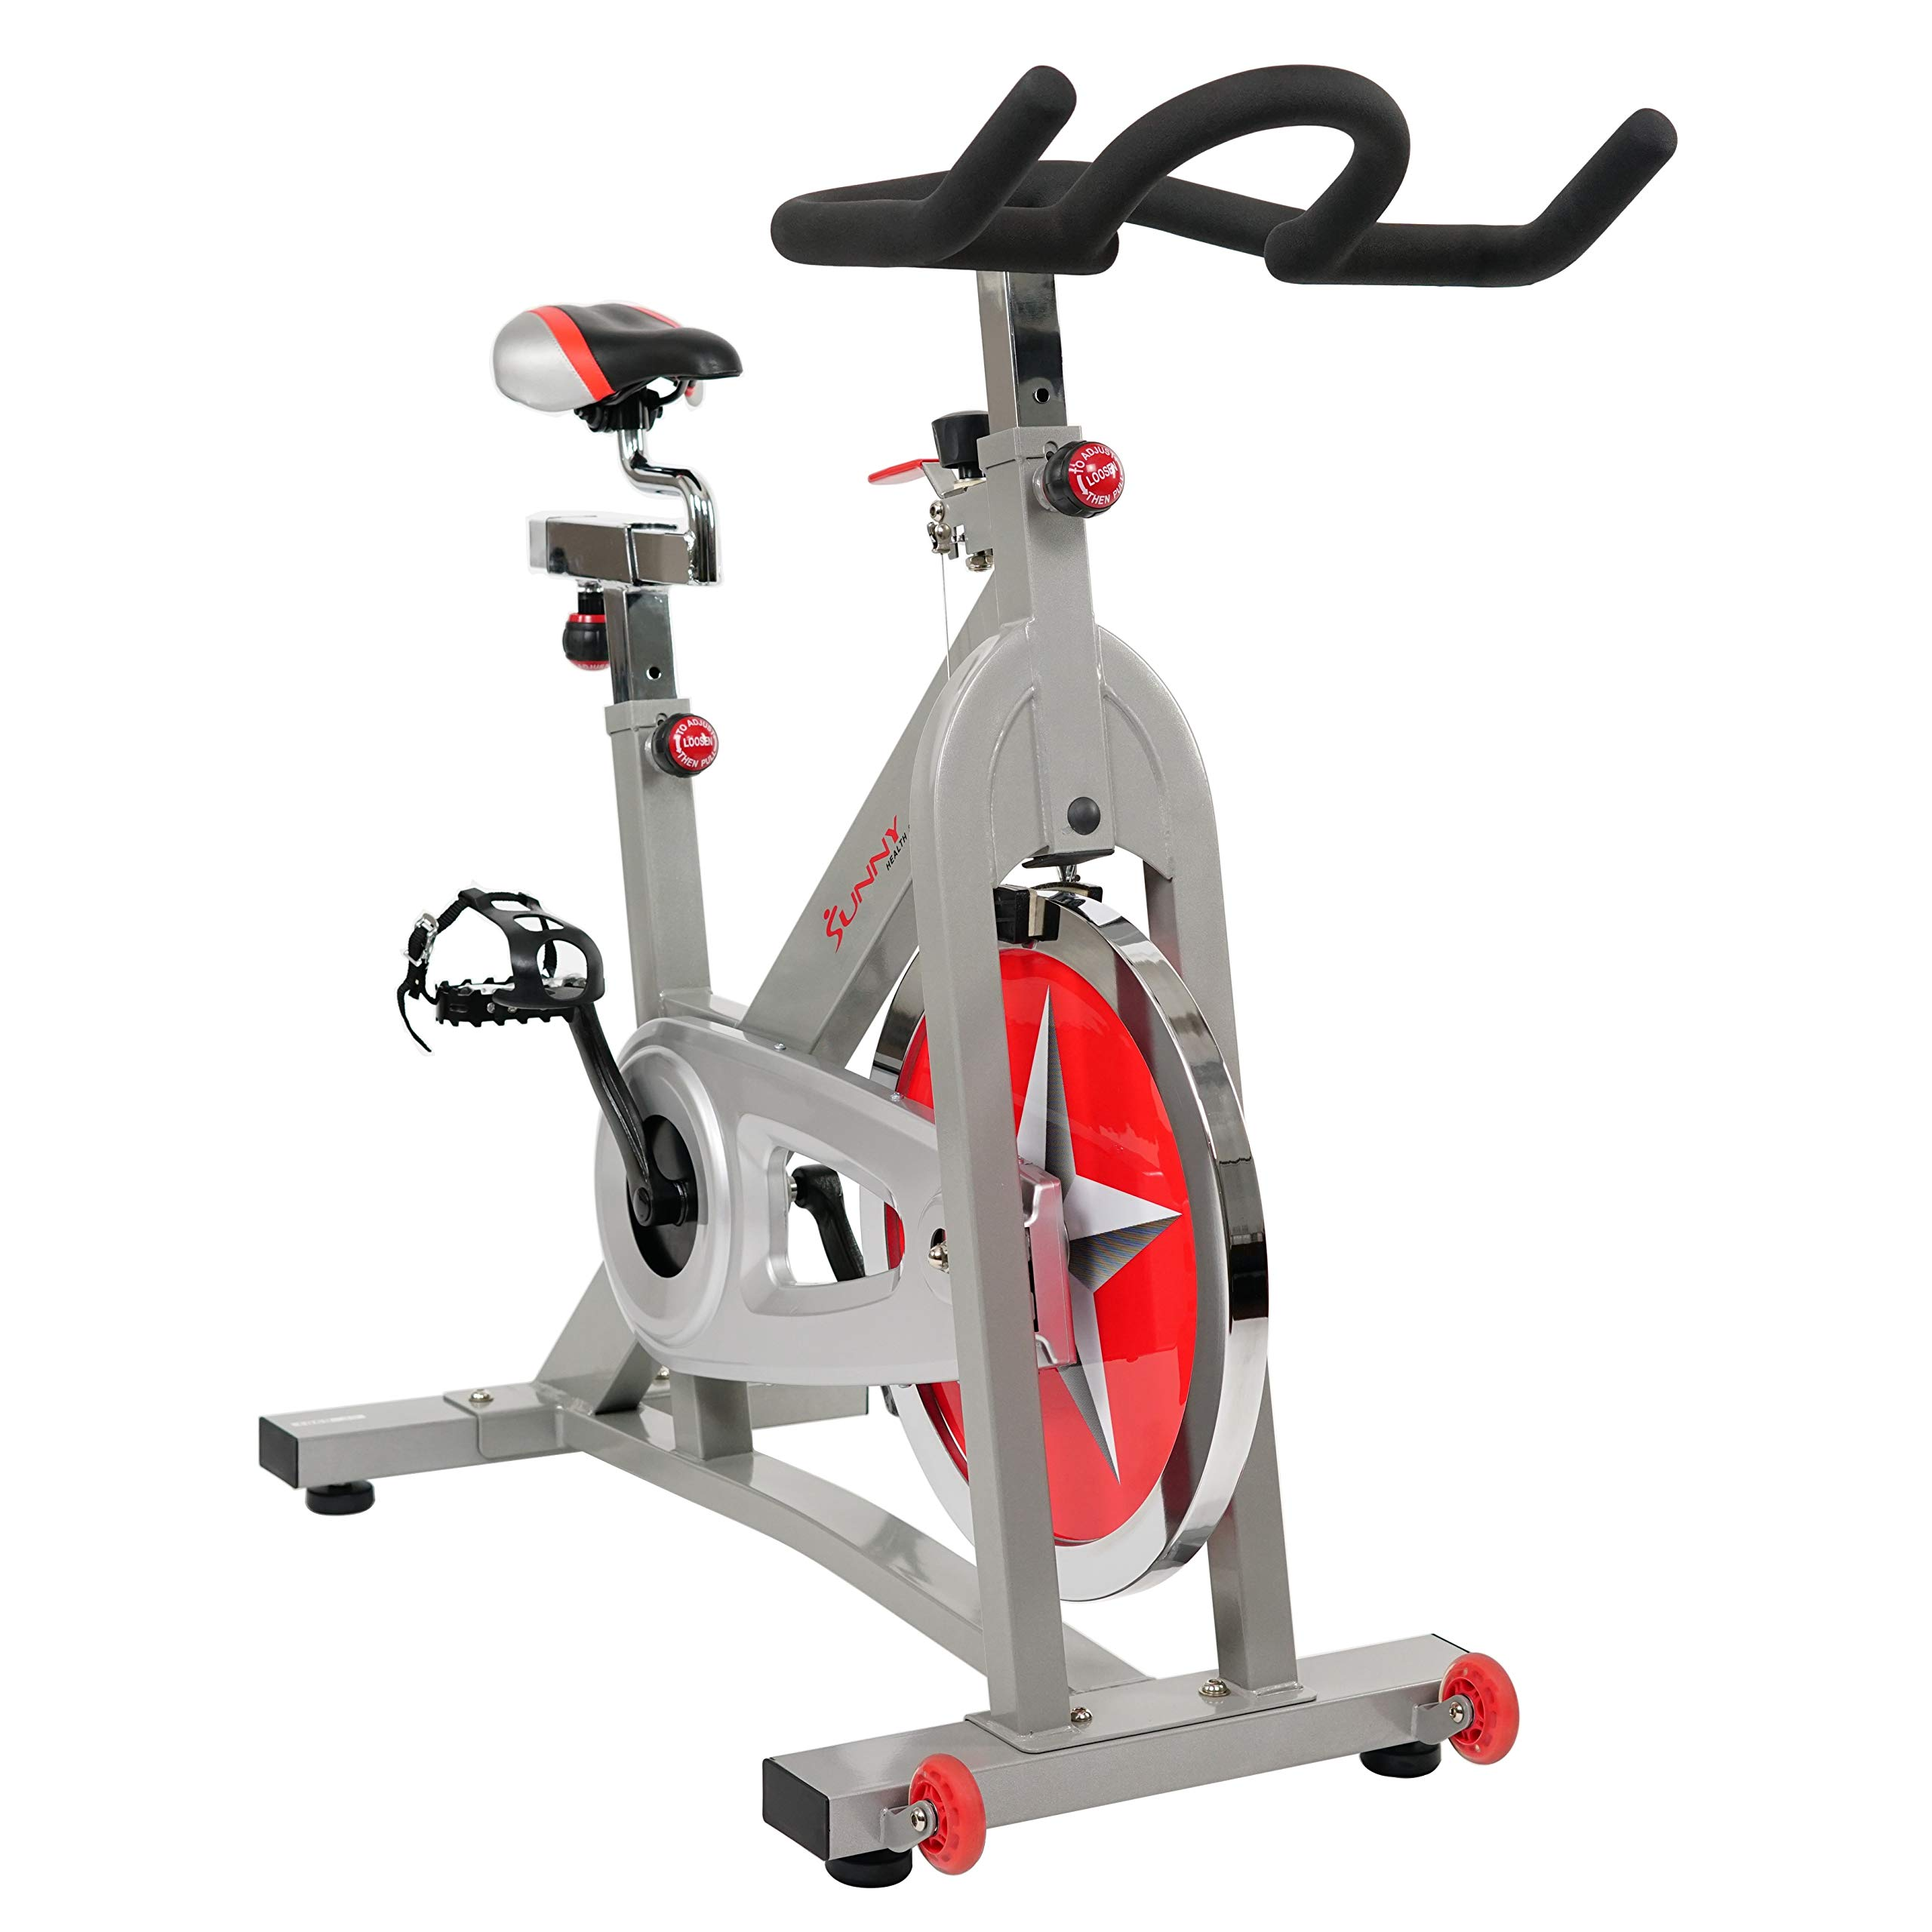 Sunny Health & Fitness Pro Indoor Cycling Bike by Sunny Health & Fitness (Image #2)